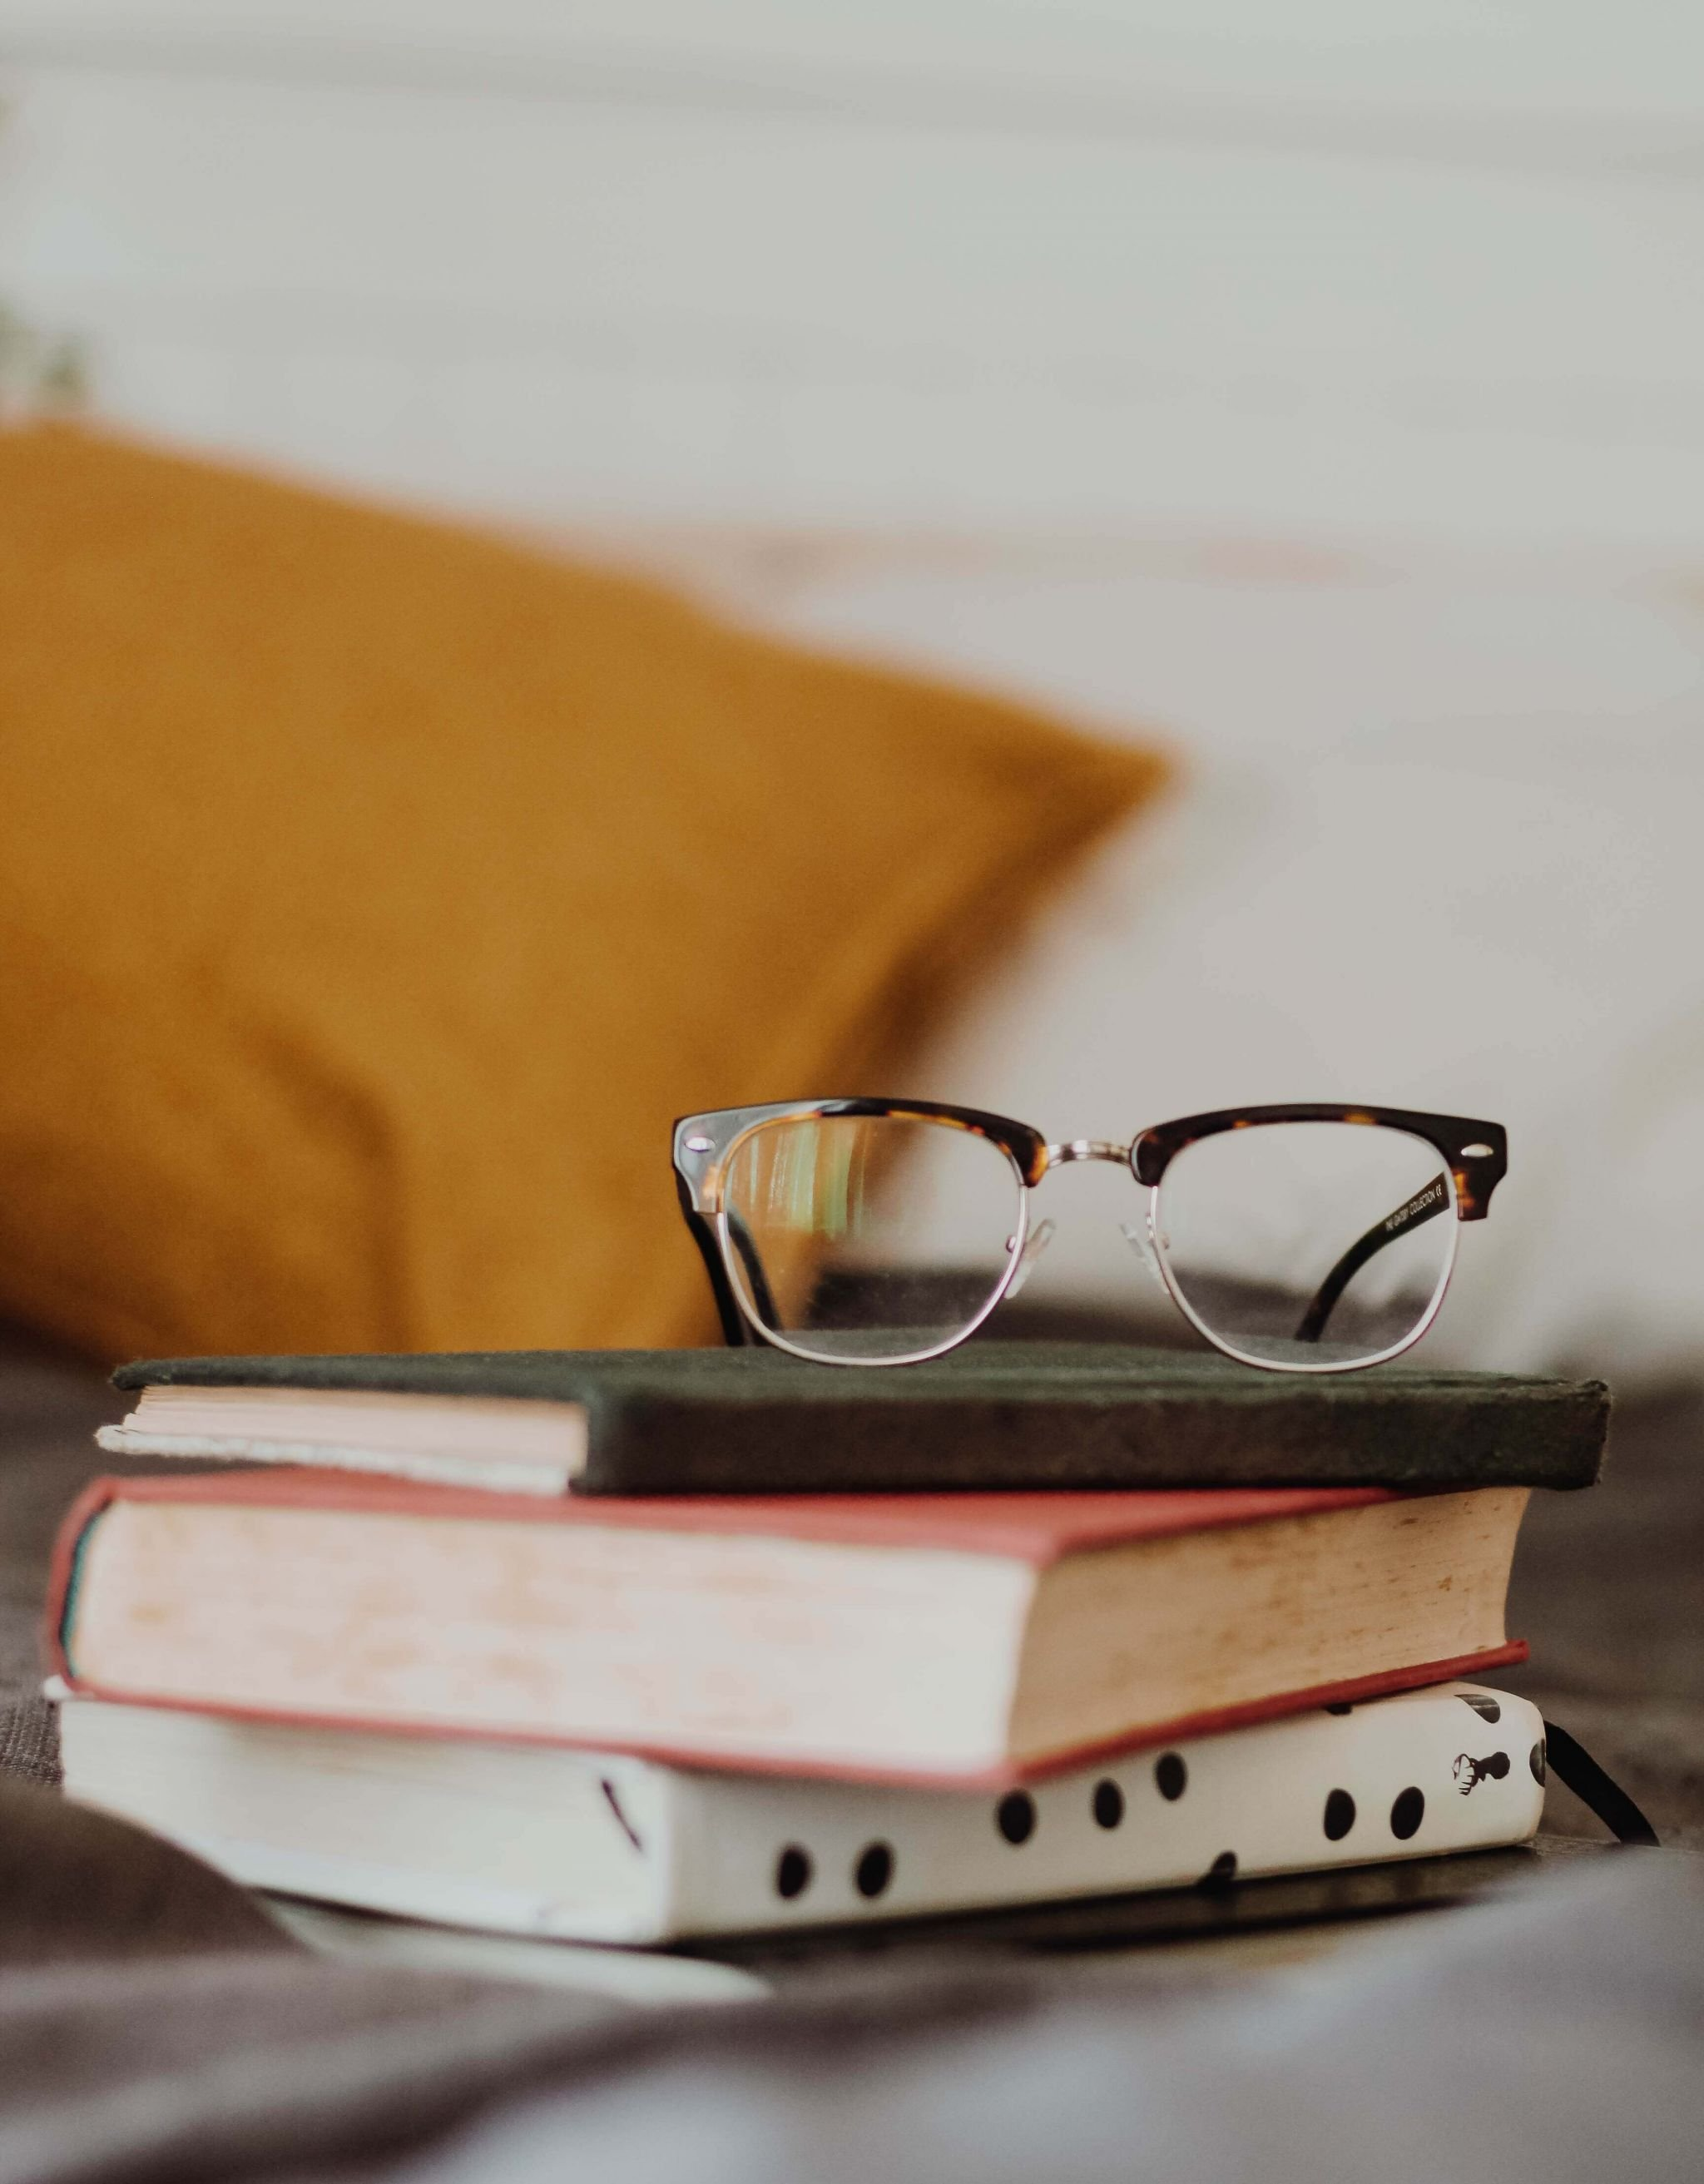 Free and bargain books - stack of books with woman's spectacles on top